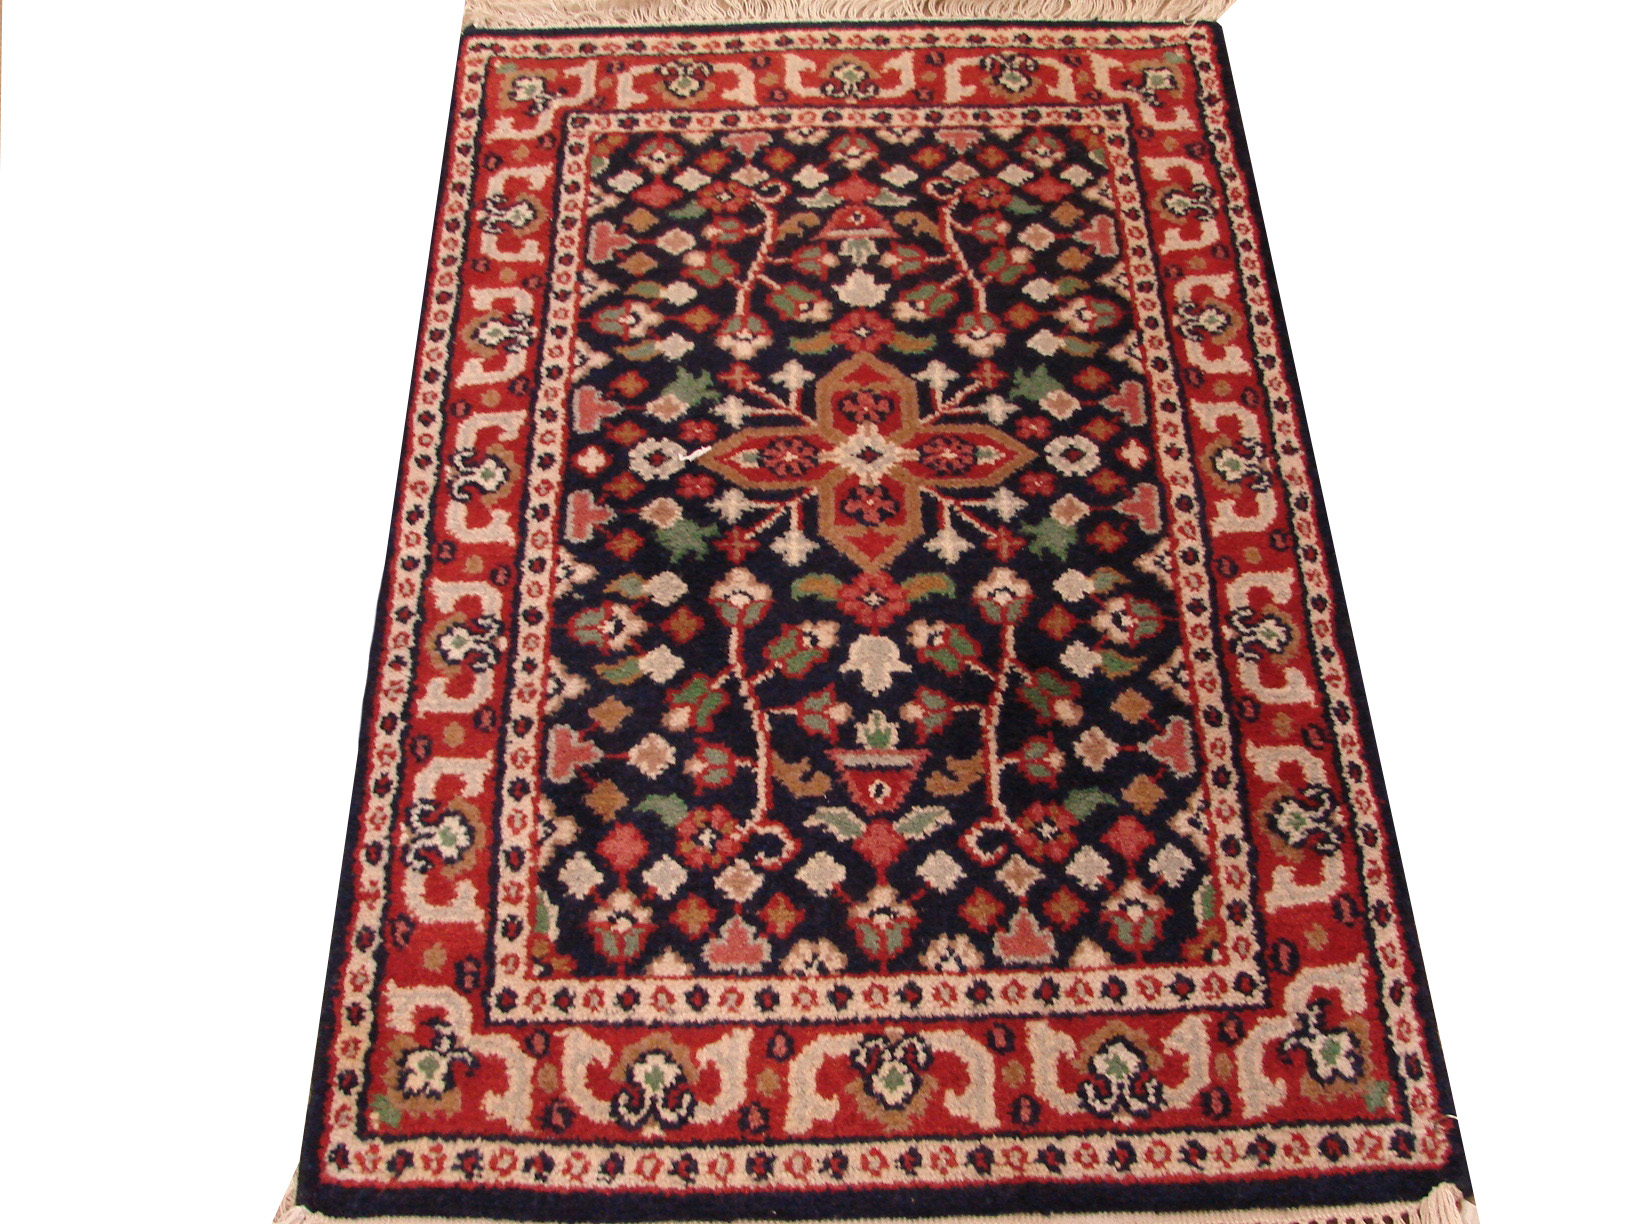 2X4 Traditional Hand Knotted Wool Area Rug - MR0584